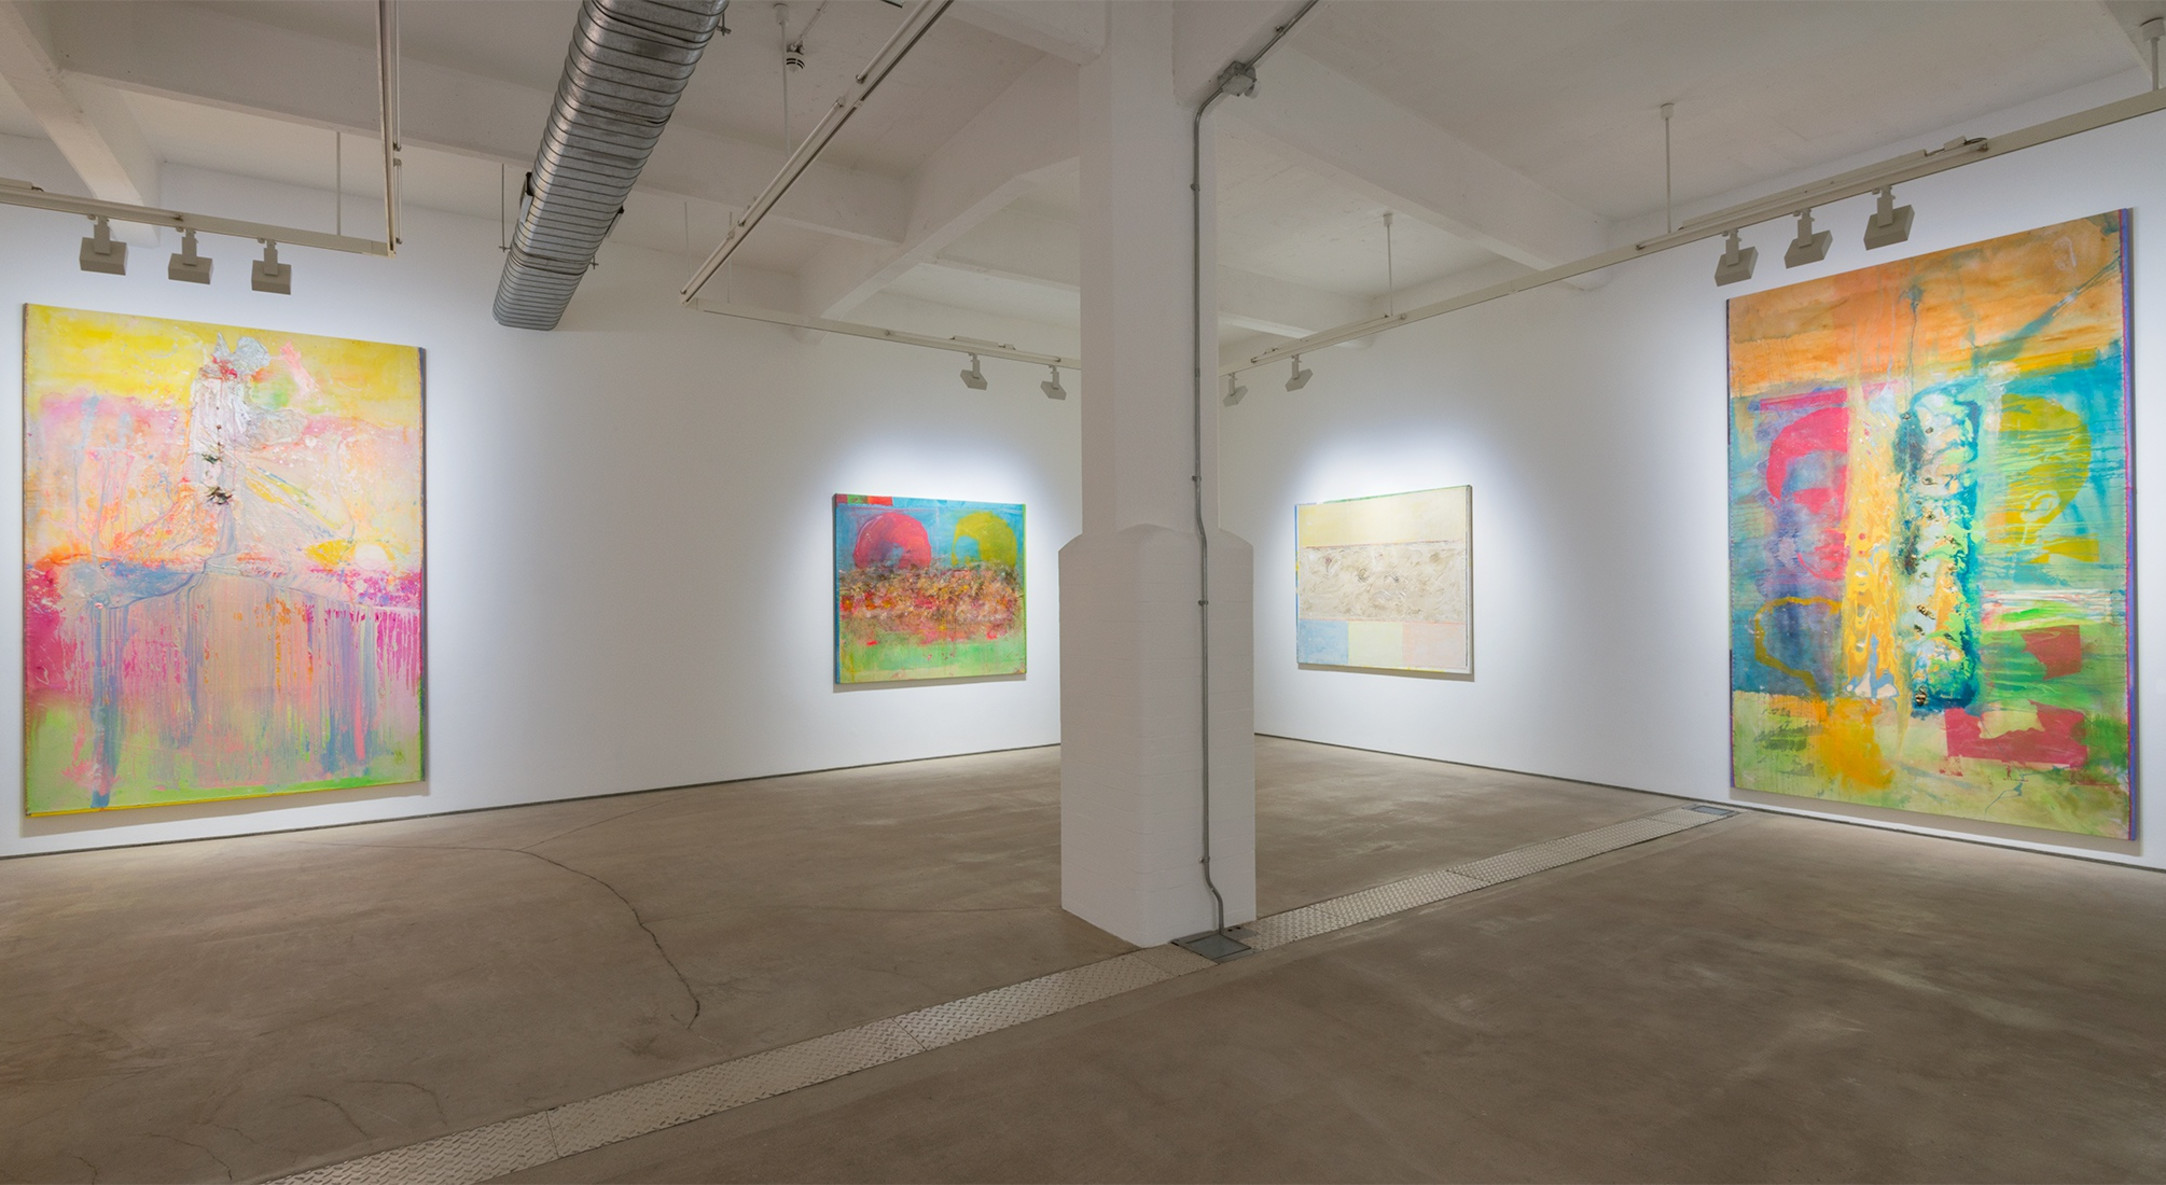 Installation view of Frank Bowling, Fishes, Wishes in Summertime Blue at Hales London